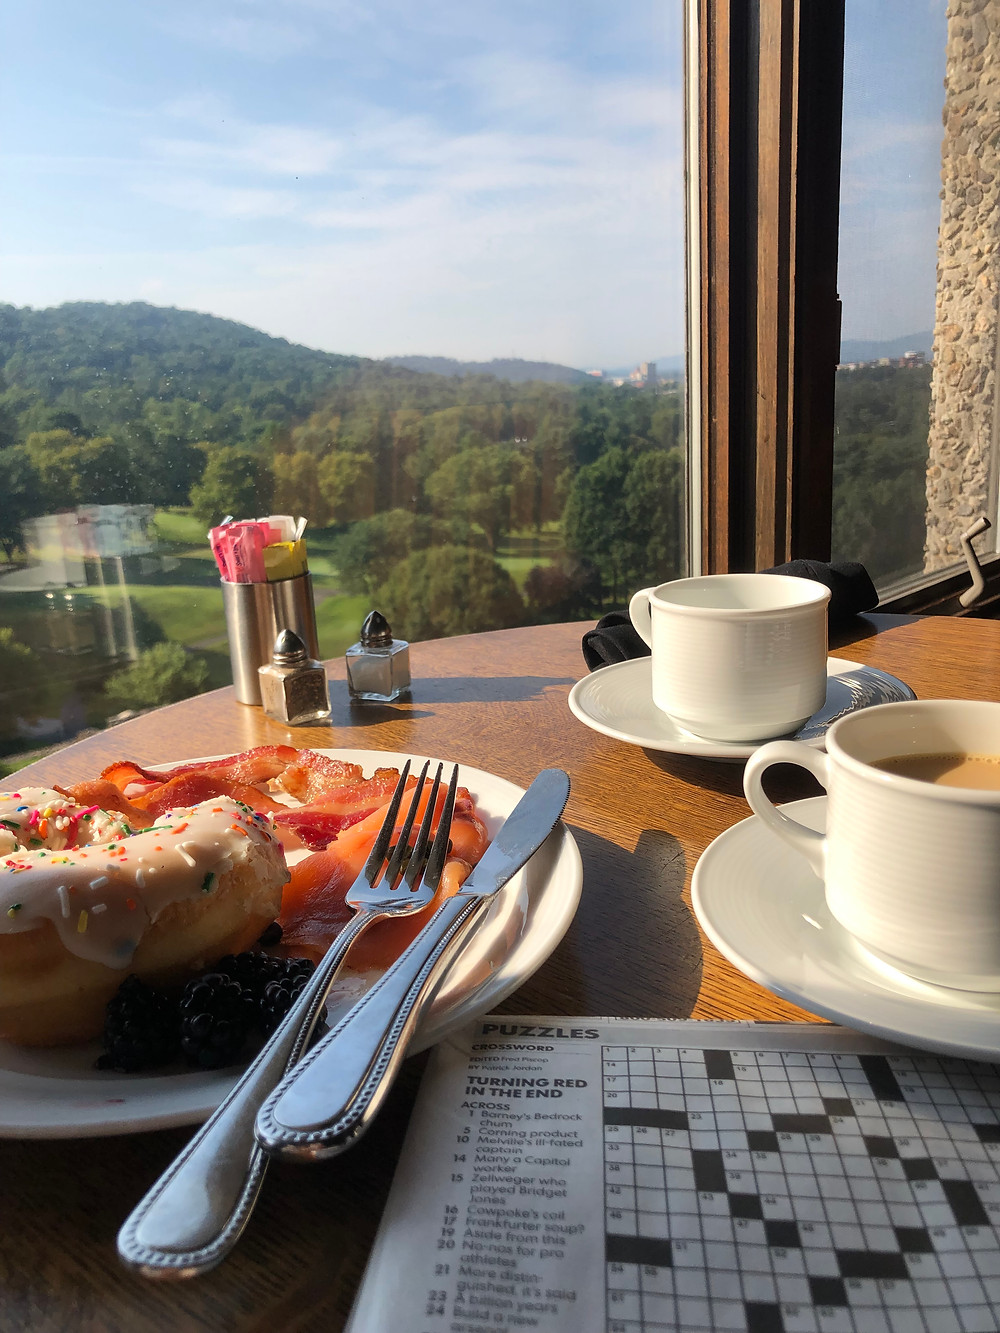 Romantic getaway to Grove Park Inn in Asheville, NC. Breakfast on Club Level overlooking Blue Ridge Mountains. Asheville travel guide and video diary.